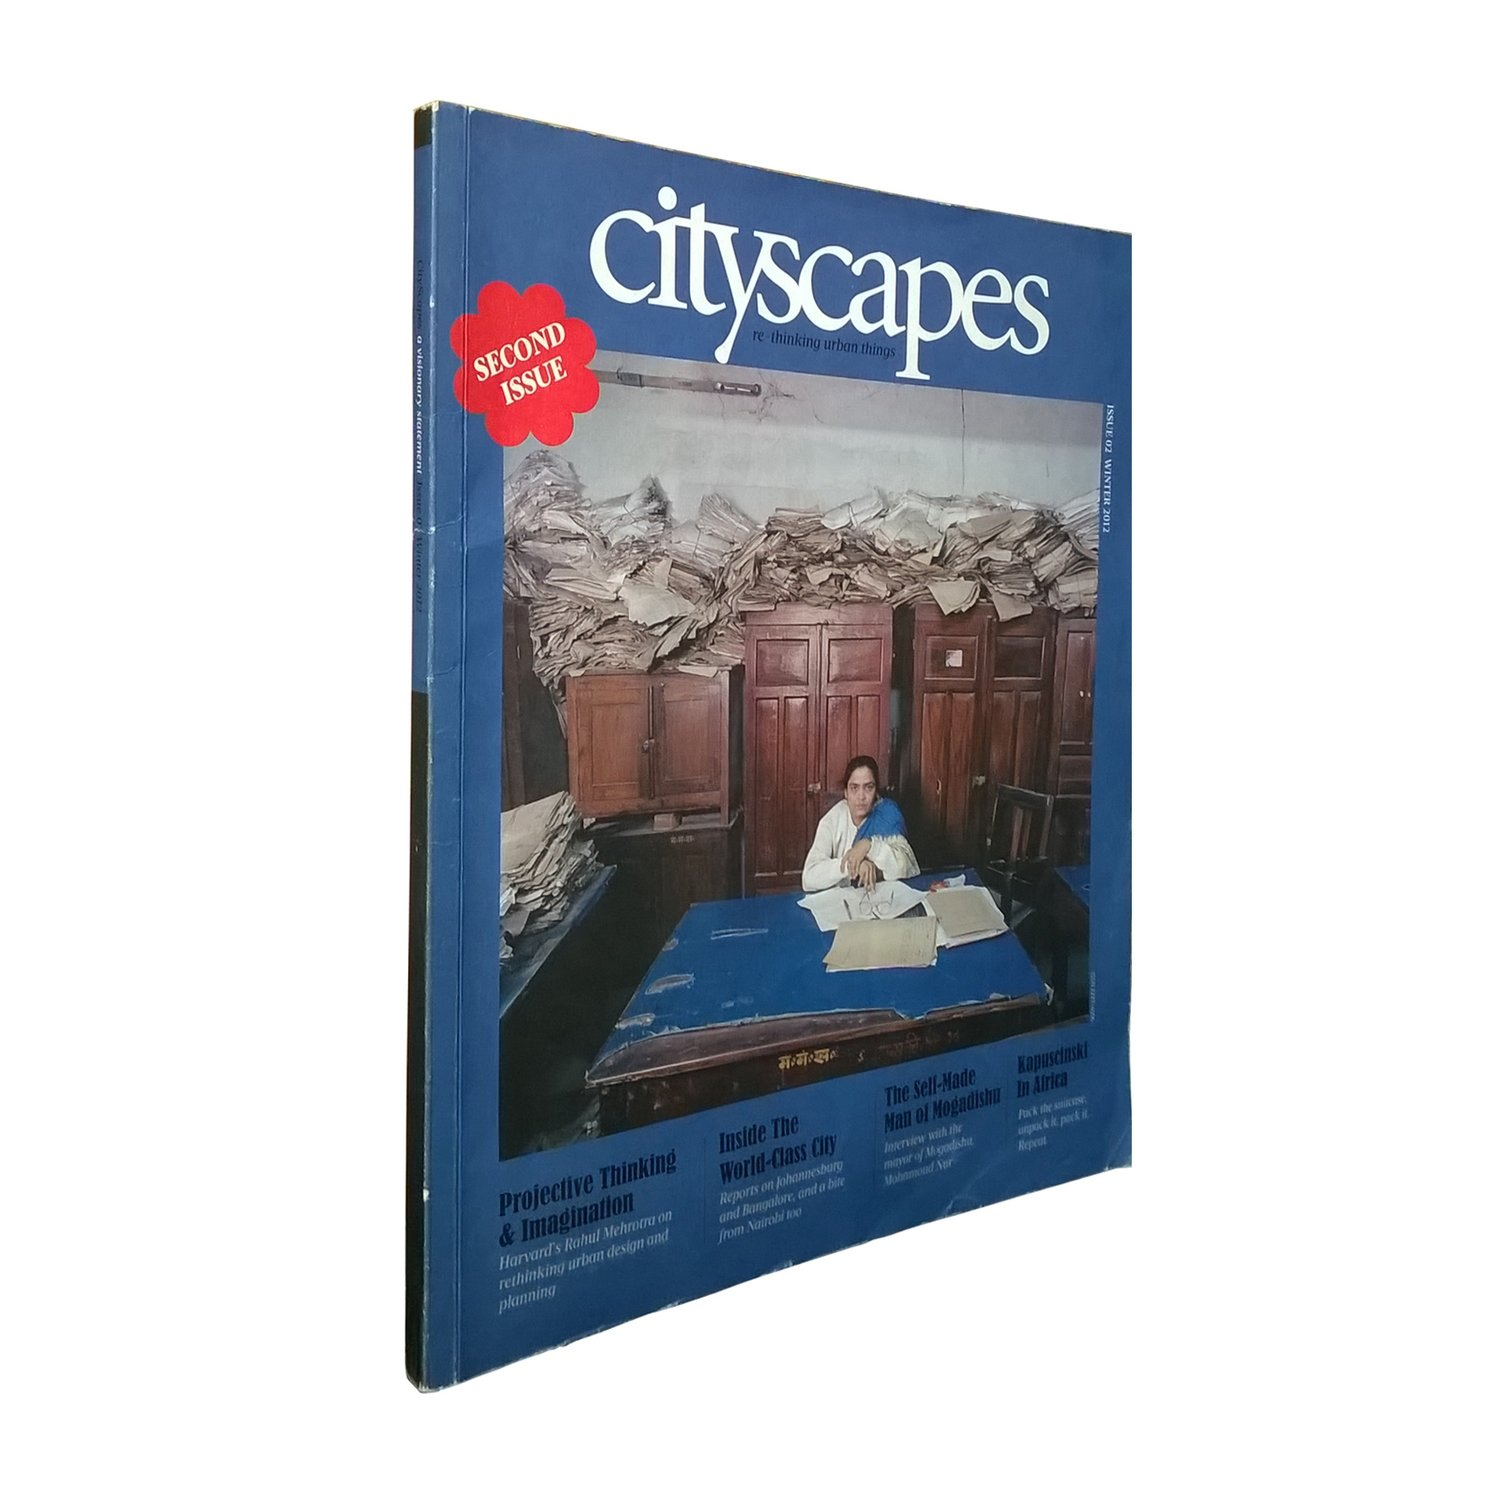 Cityscapes 2: Inside